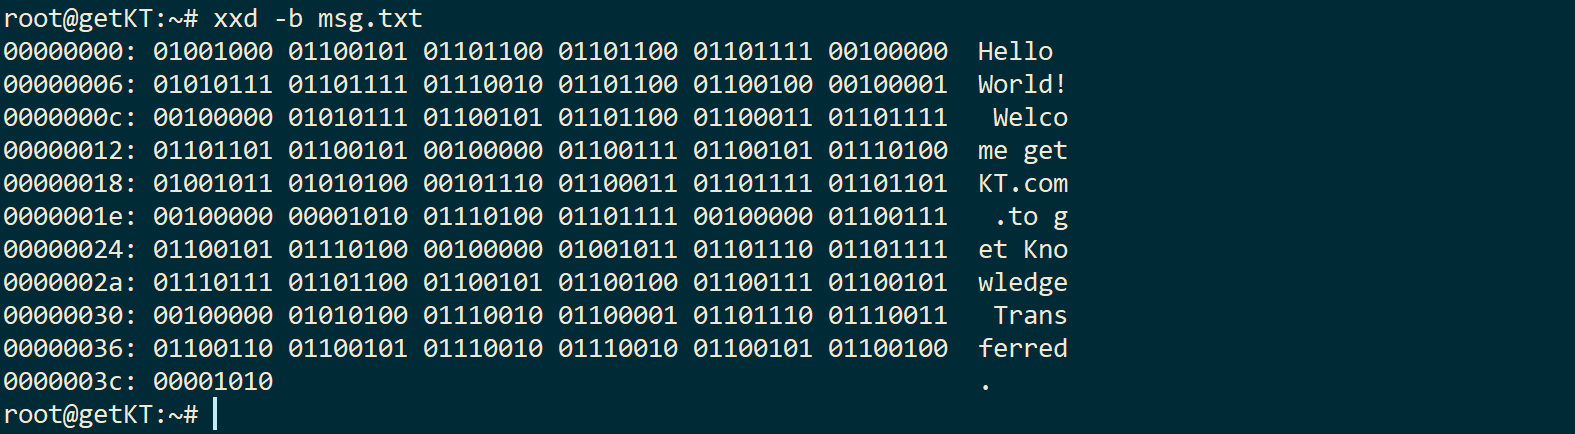 xxd -b command to binary digit dump content of file